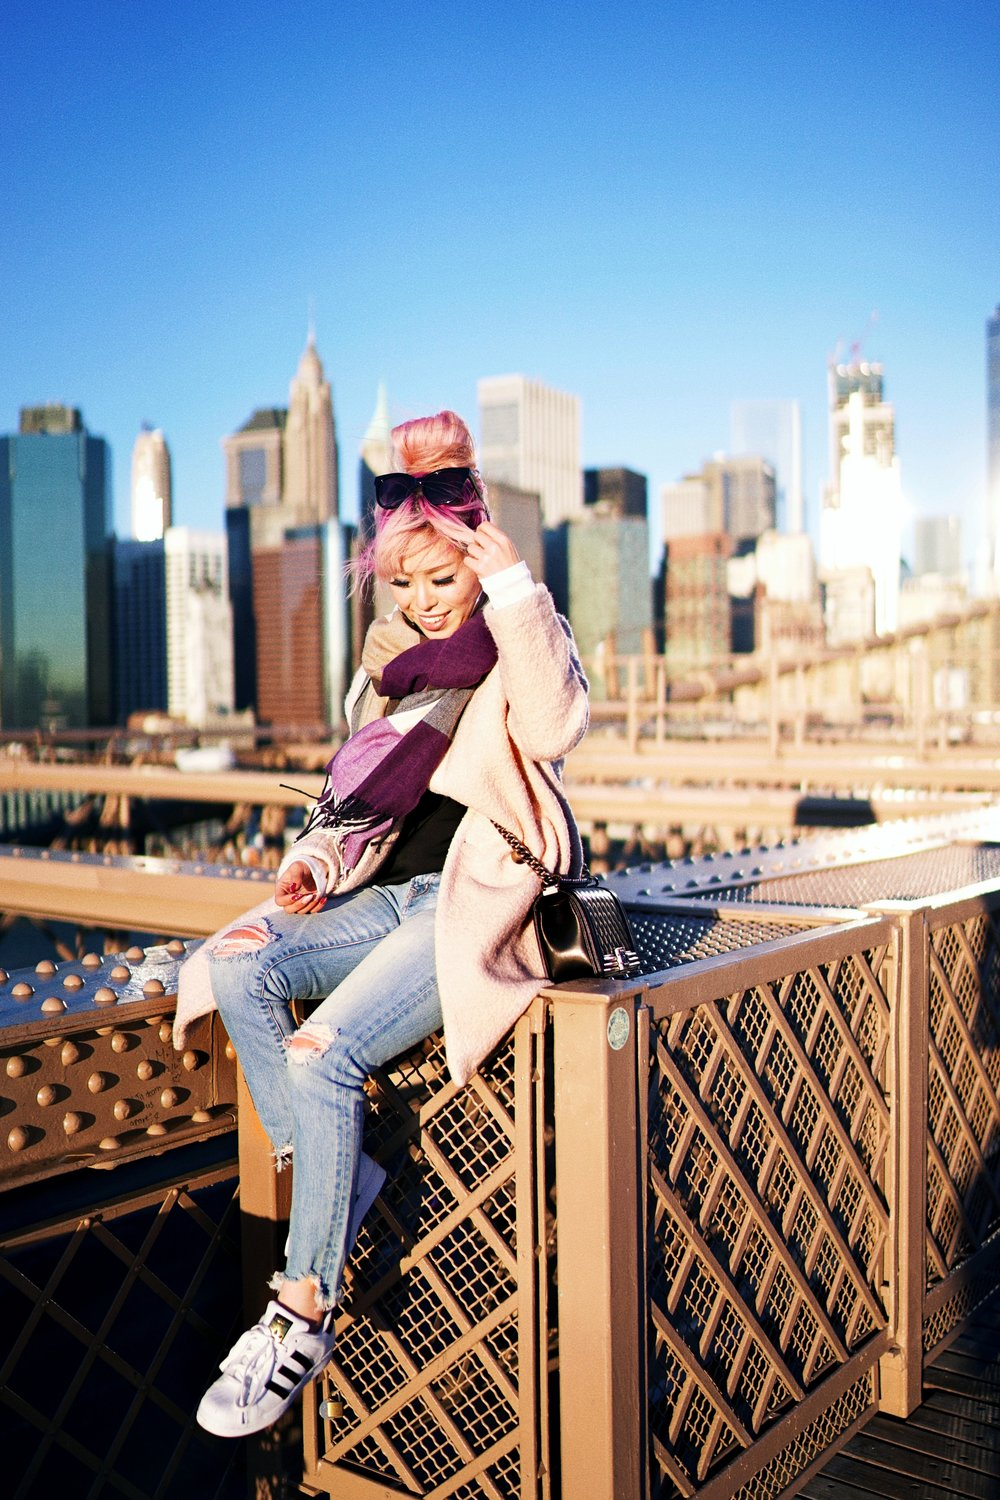 GAP Scarf-Zara pink coat-MOUSSY- frayed hem jeans- CHANEL Lambskin Quilted Medium Boy Flap Black-Adidas Superstar Shoes-Urban Outfitters Sunglasses-Aika's Love Closet-Sealtle fashion style blogger from japan-pink hair-brooklyn bridge-new york-city